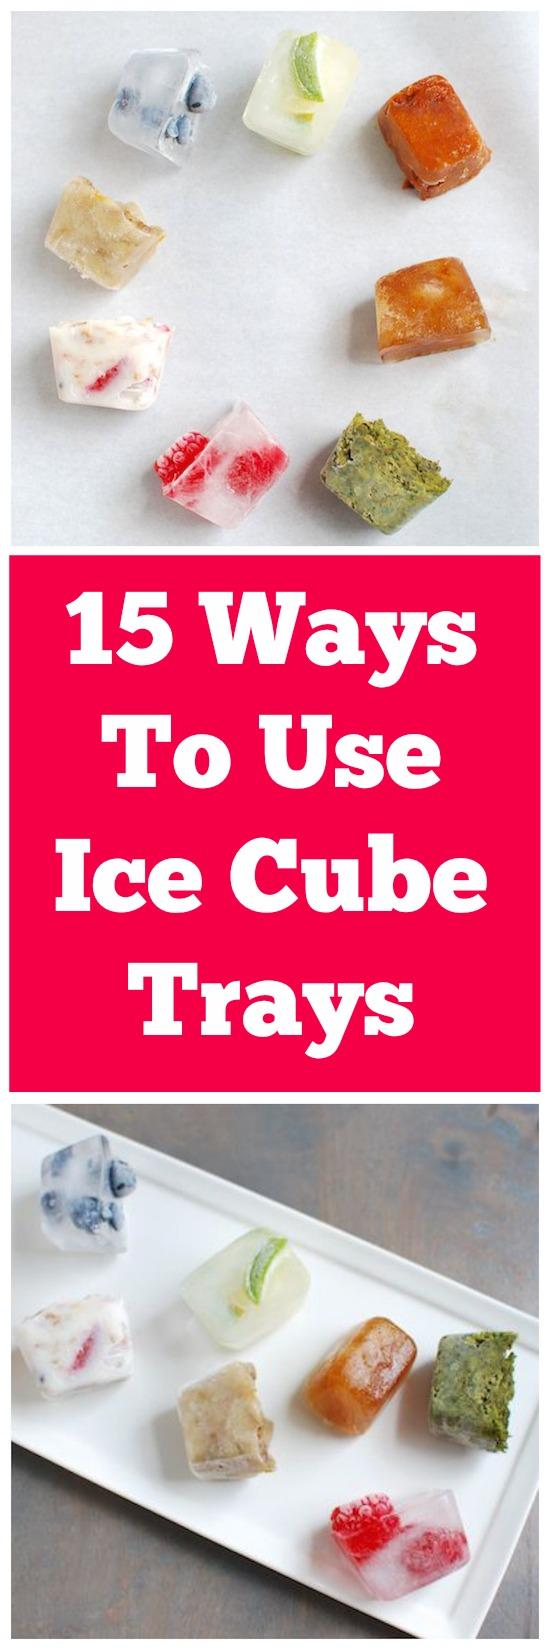 ice cube trays.jpg 15 Ways To Use Ice Cube Trays